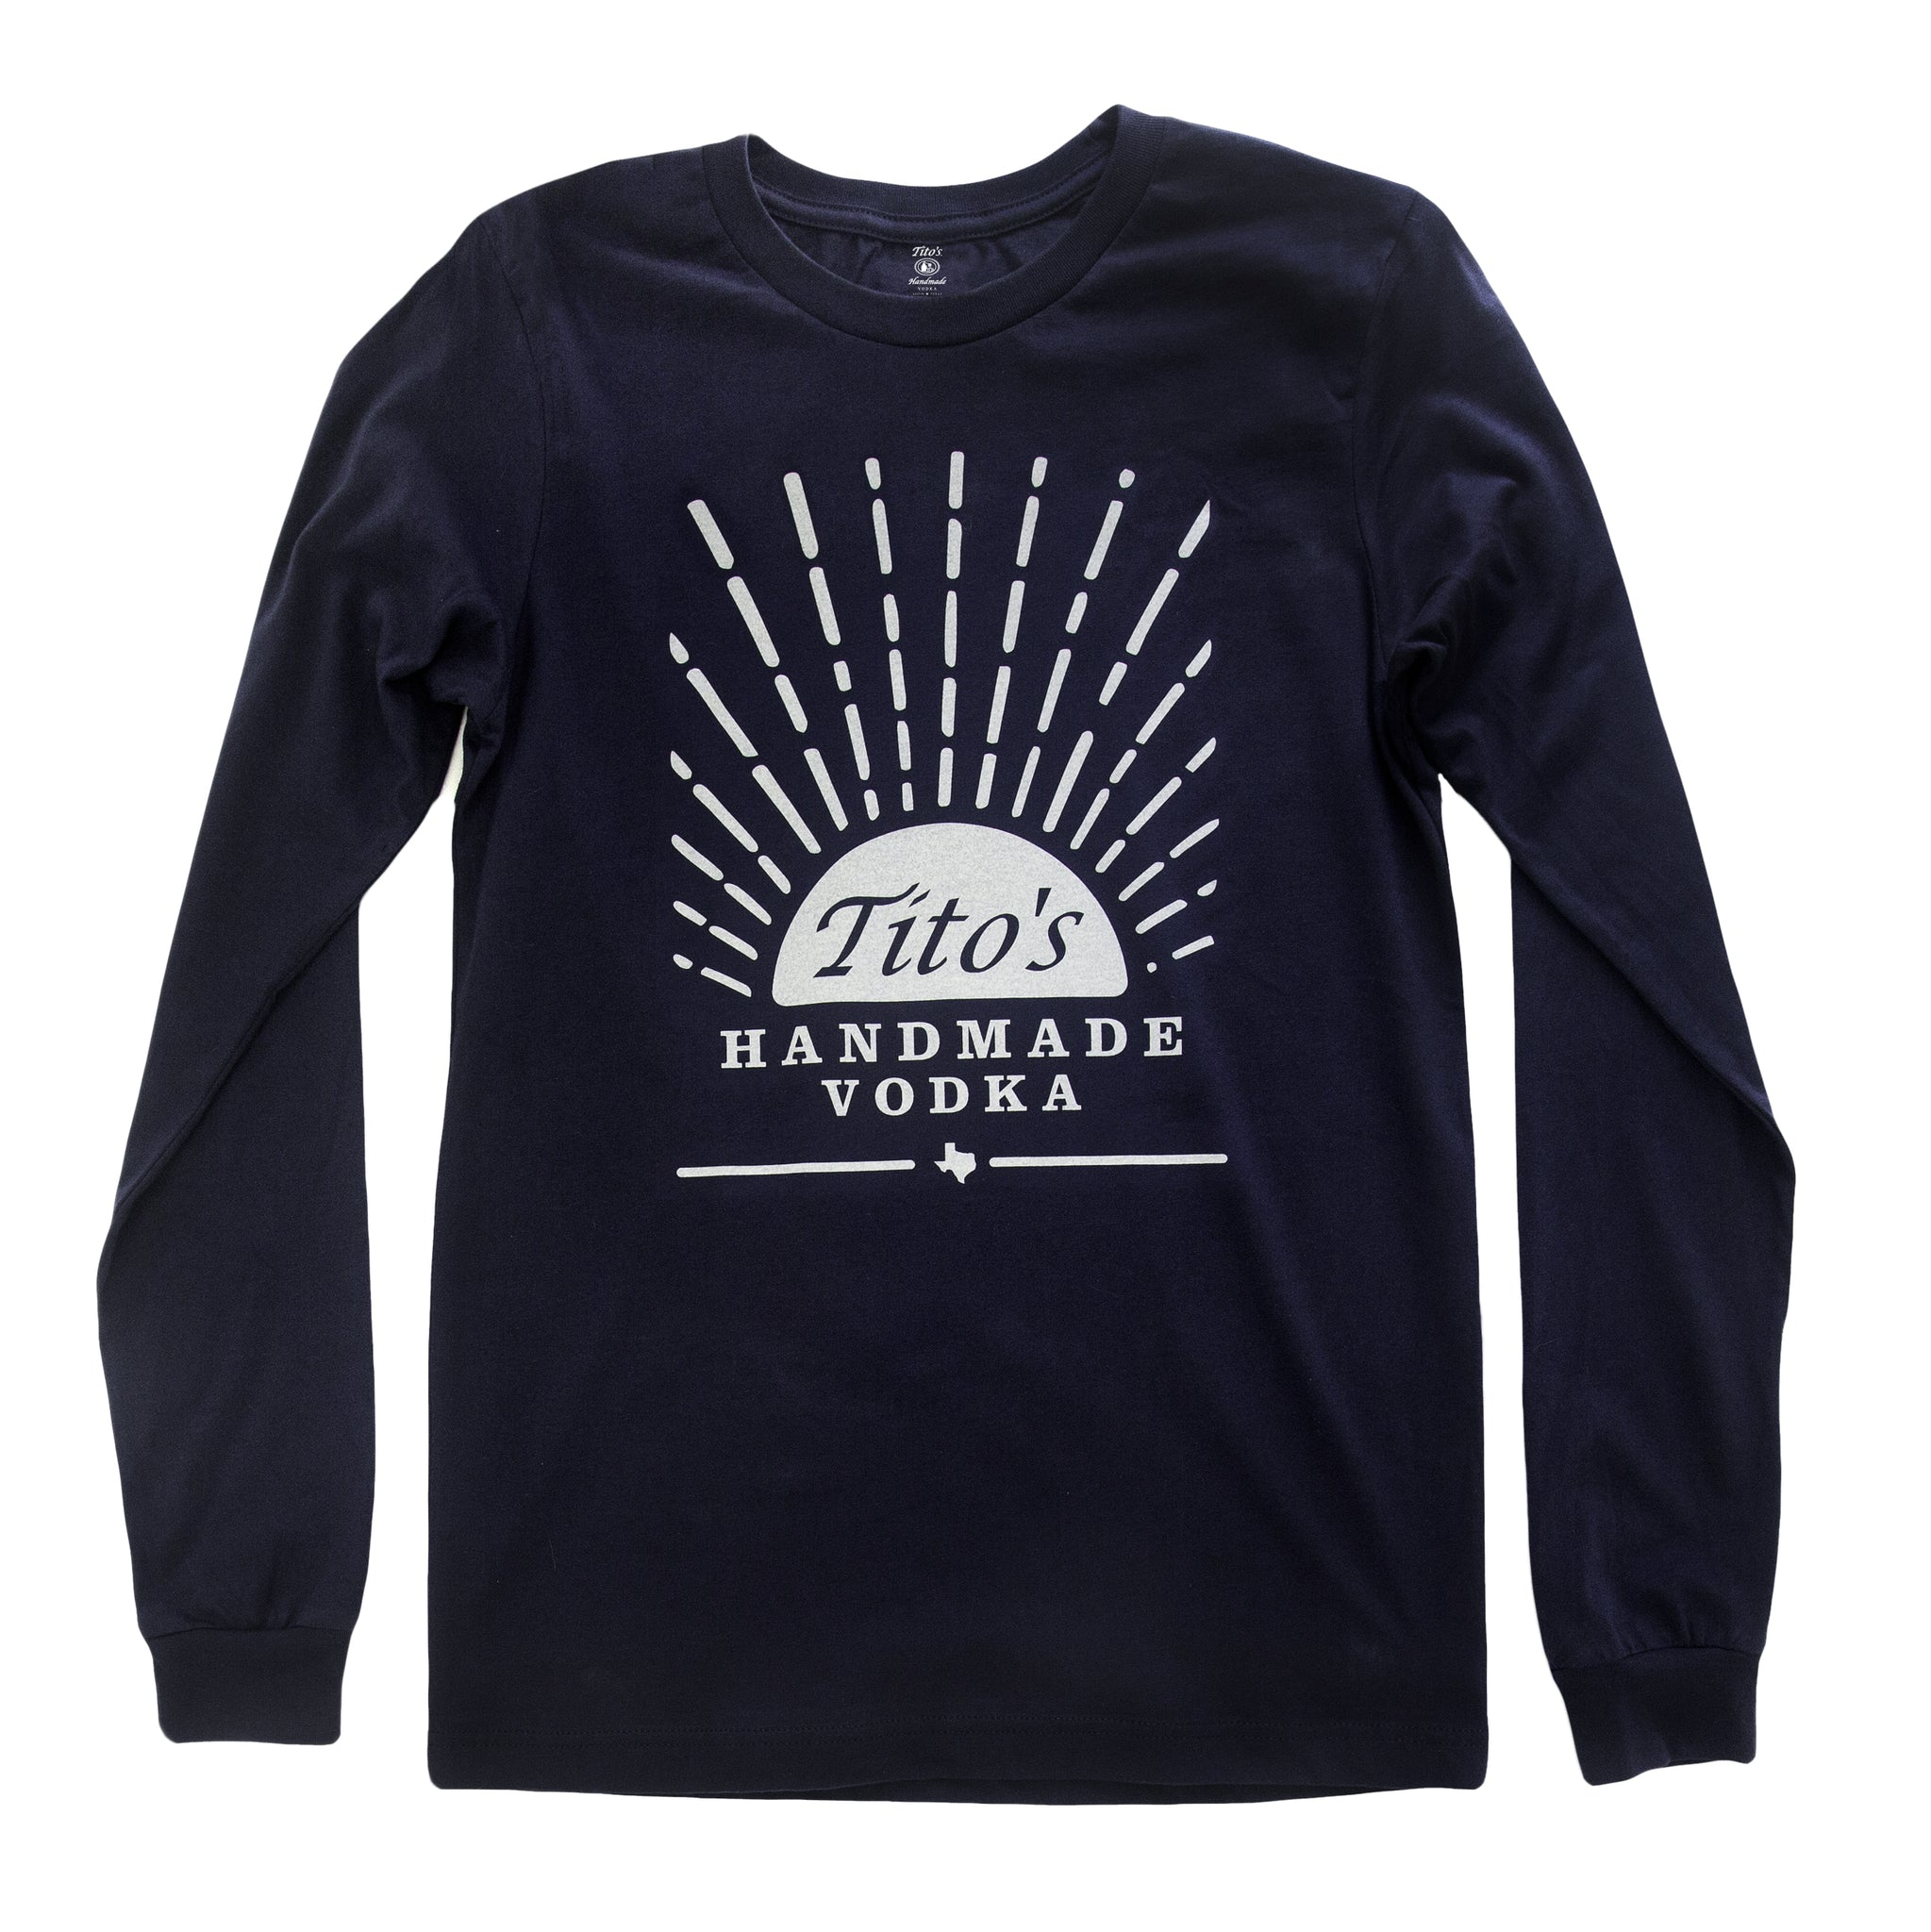 Navy long-sleeved t-shirt with Tito's Handmade Vodka mark and sunrise design